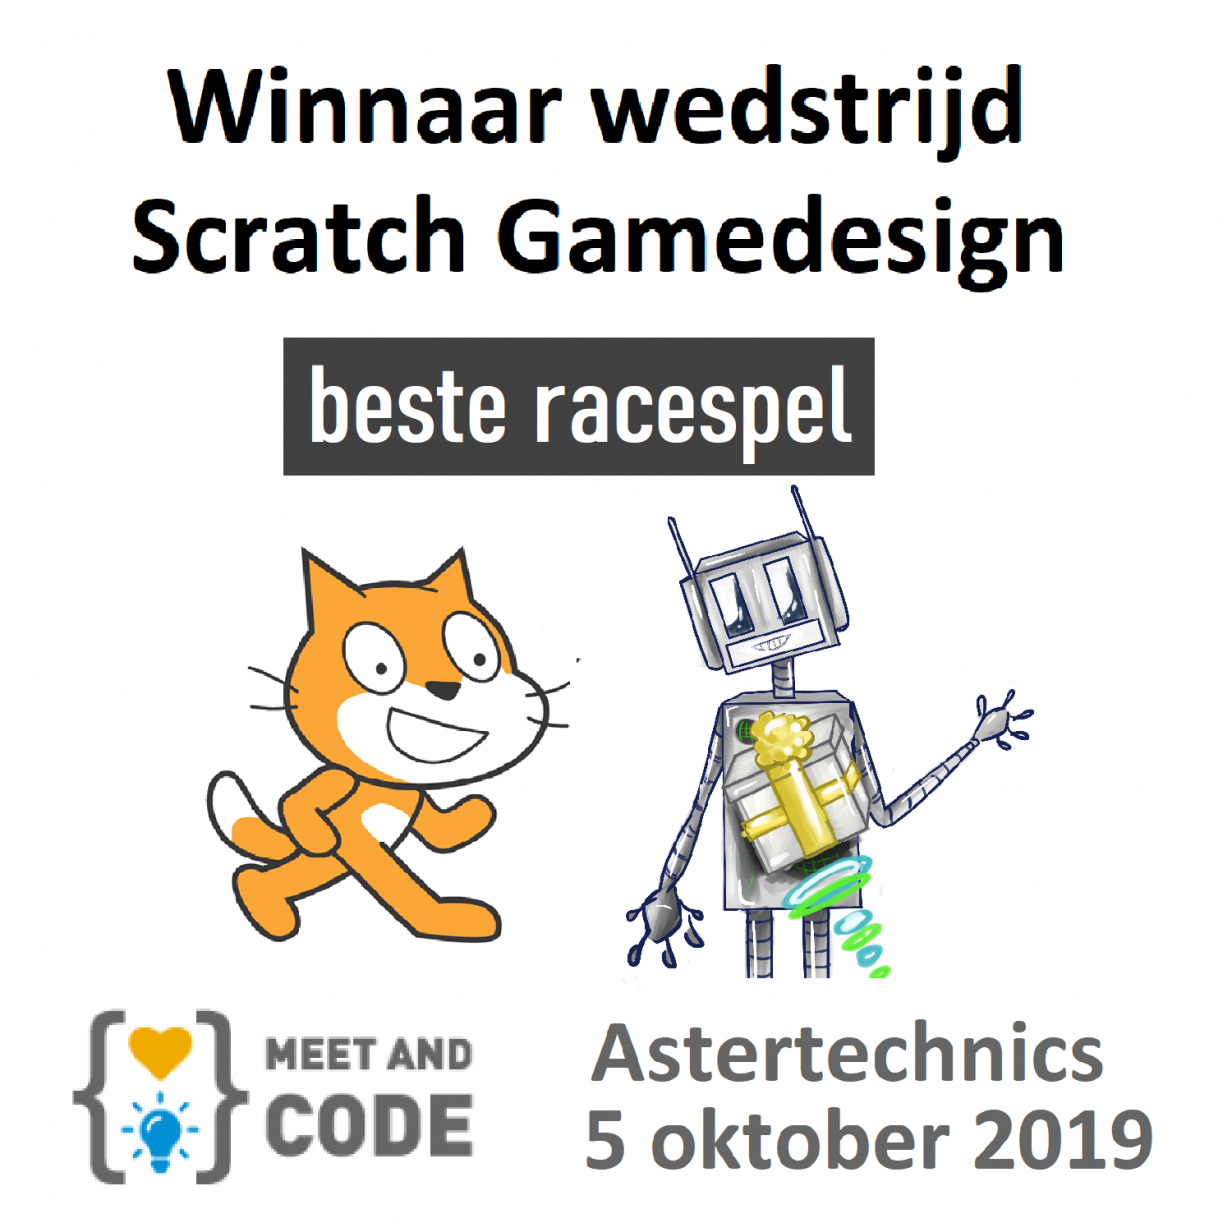 Scratch Gamedesign